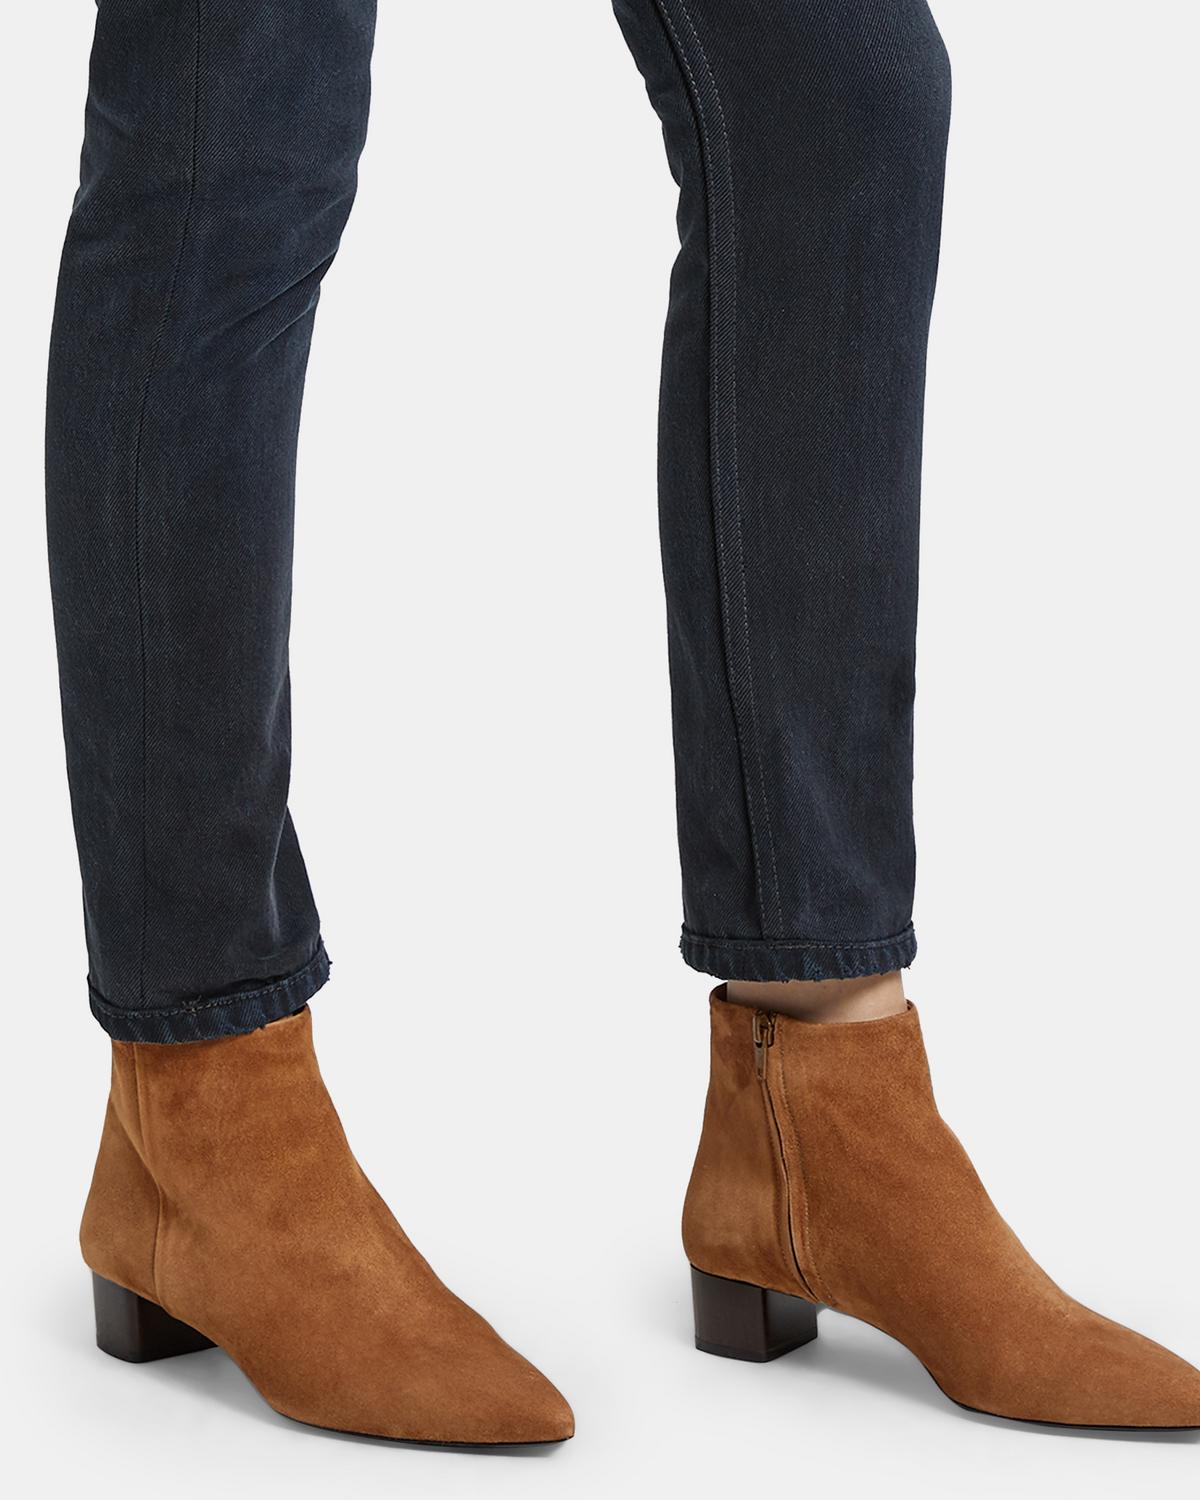 Theory Pointed-Toe Suede Boots Free Shipping With Mastercard ZcS2t